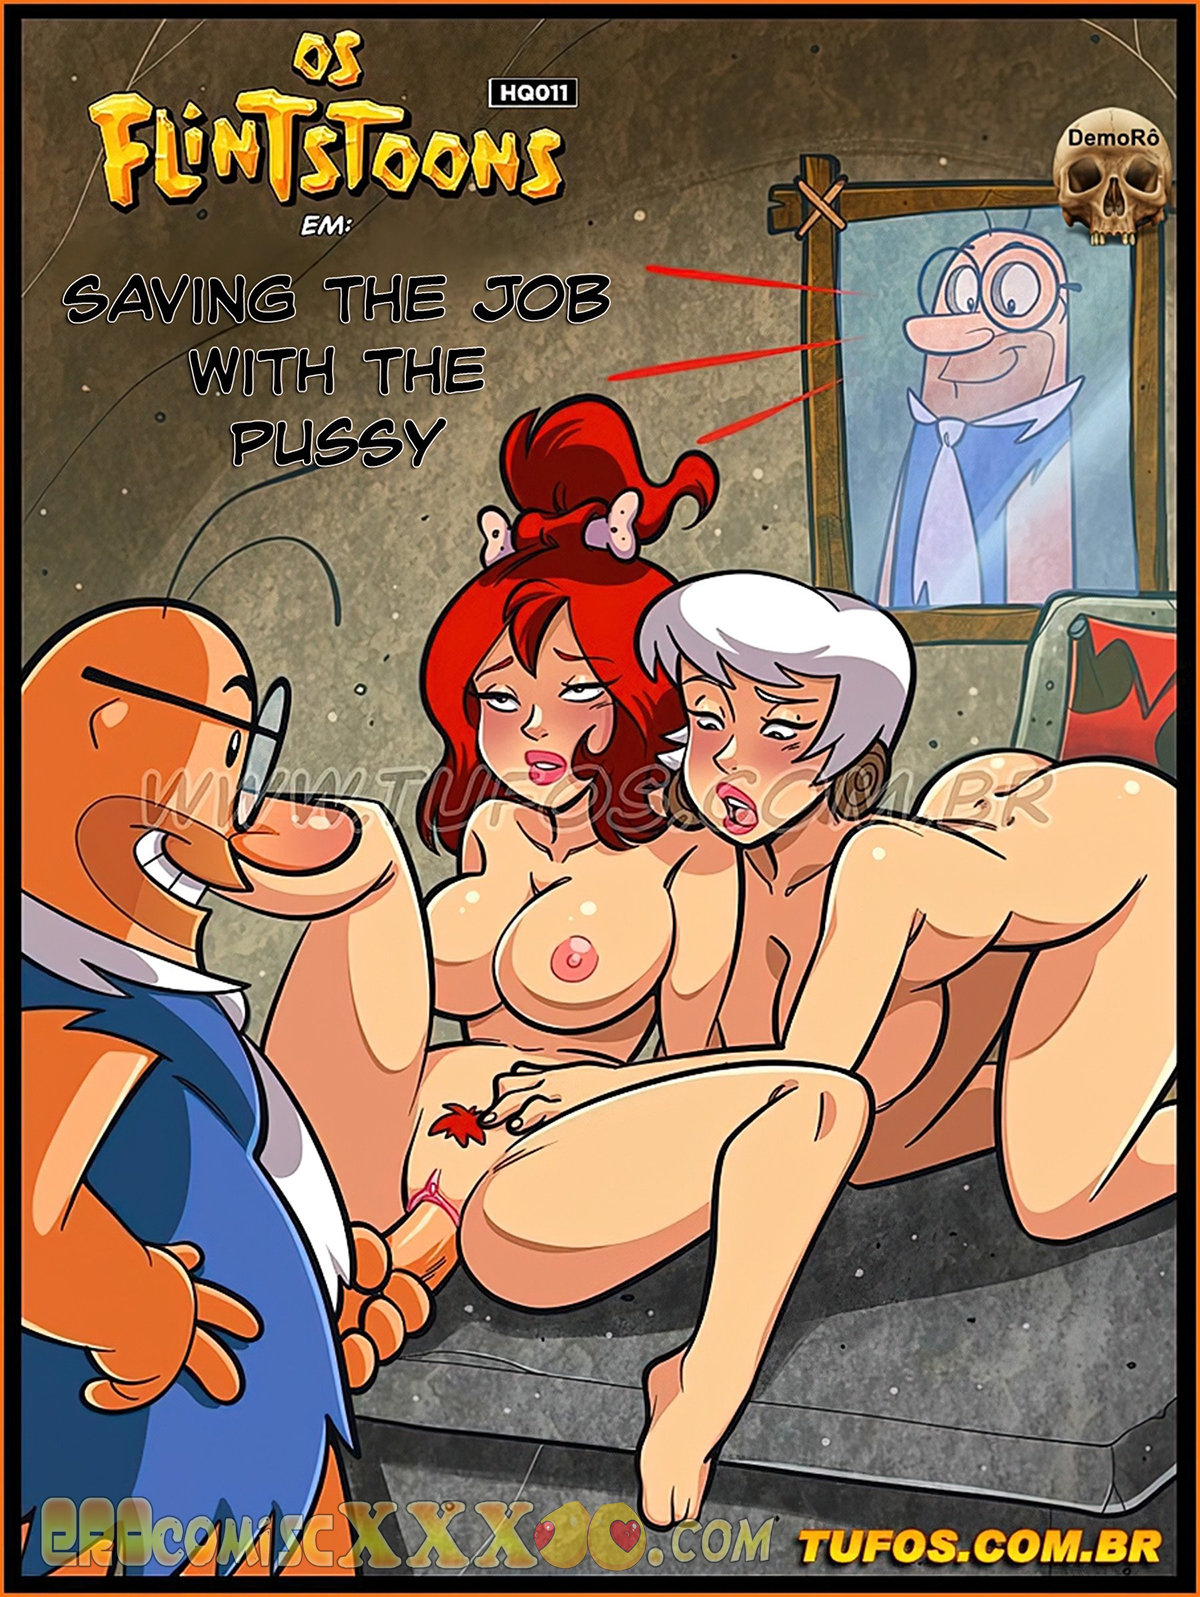 001 13 - The Flintstones 11. Saving The Job With The Pussy.